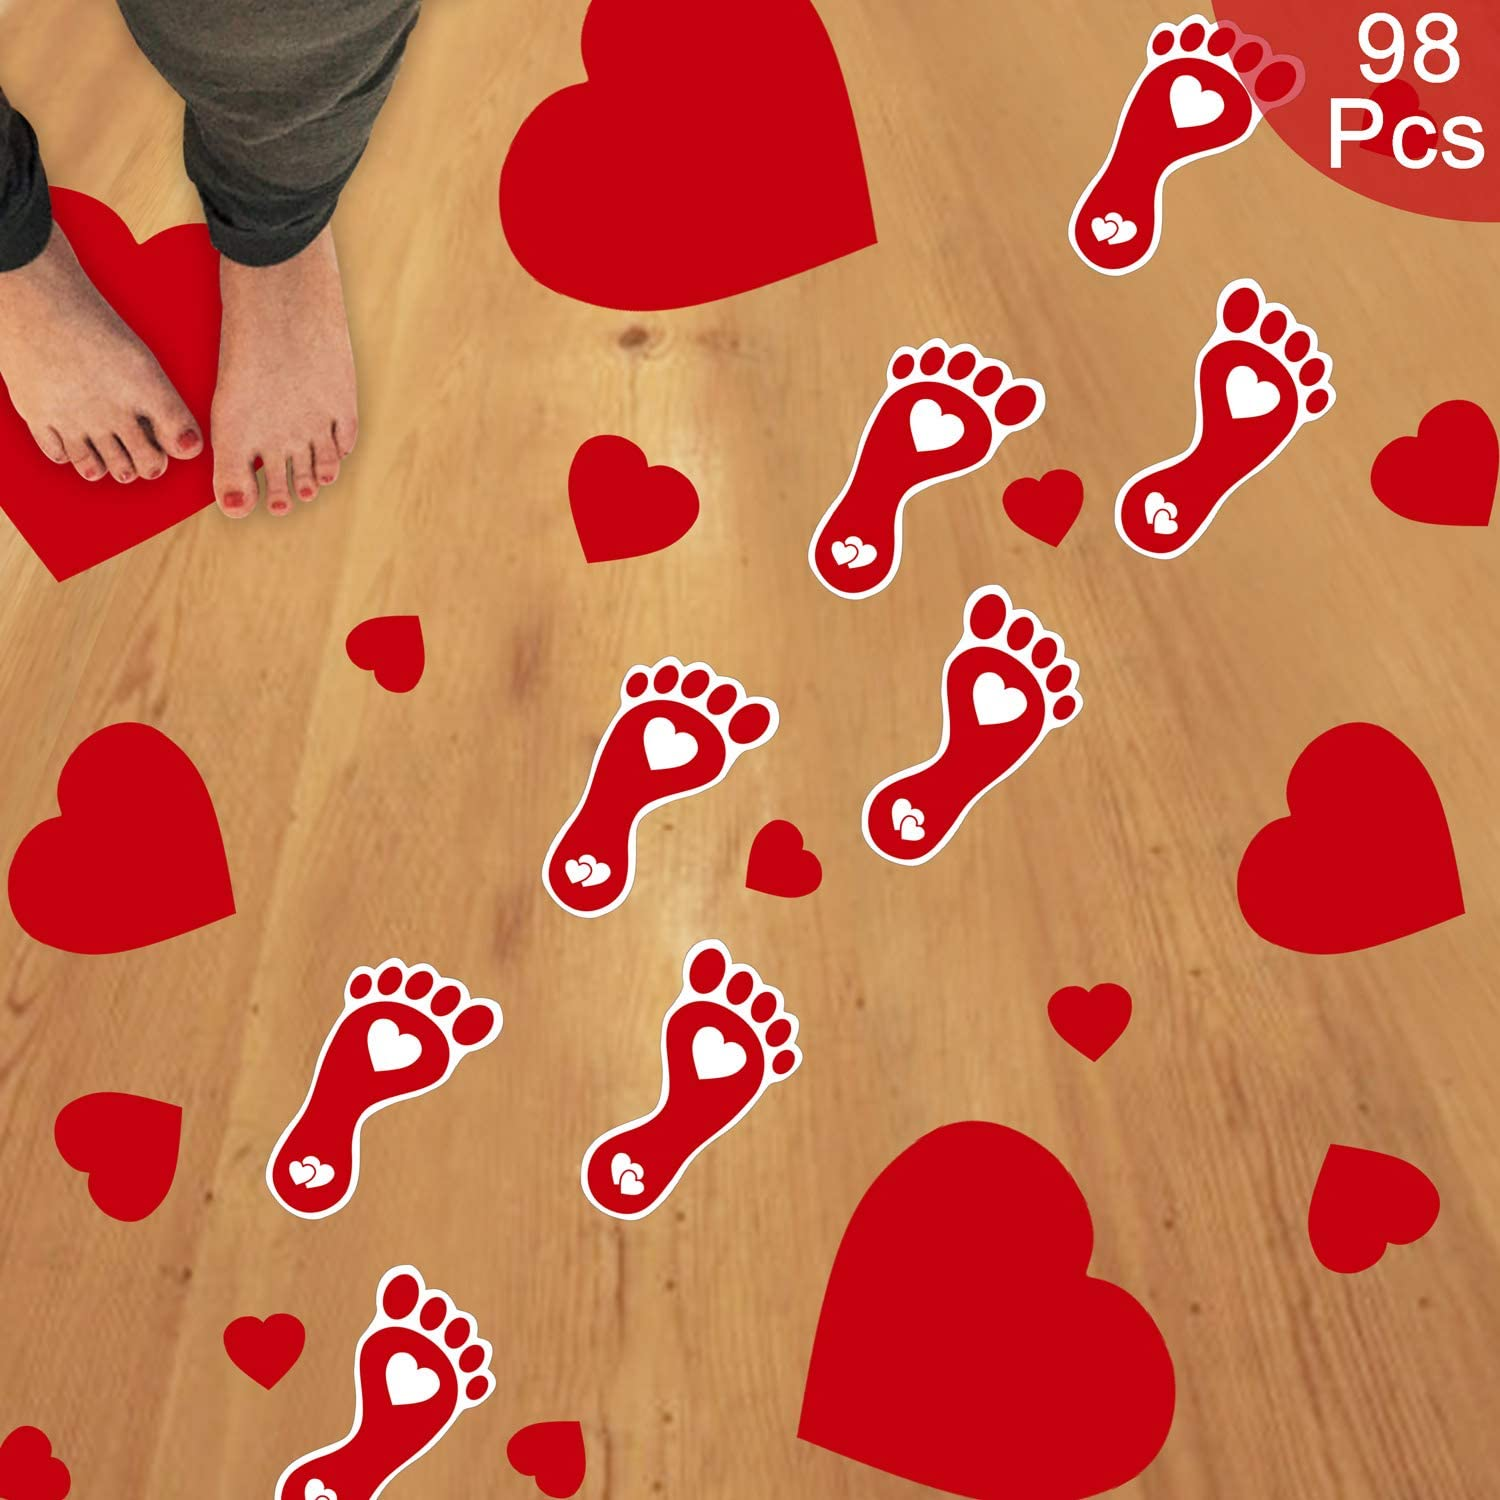 Tifeson 98 PCS Valentine's Day Heart Floor Stickers Decoration for Home Office - Heart Footprints Decals for Wall, Window - Mother's Day Decorations, Wedding, Anniversary Decor